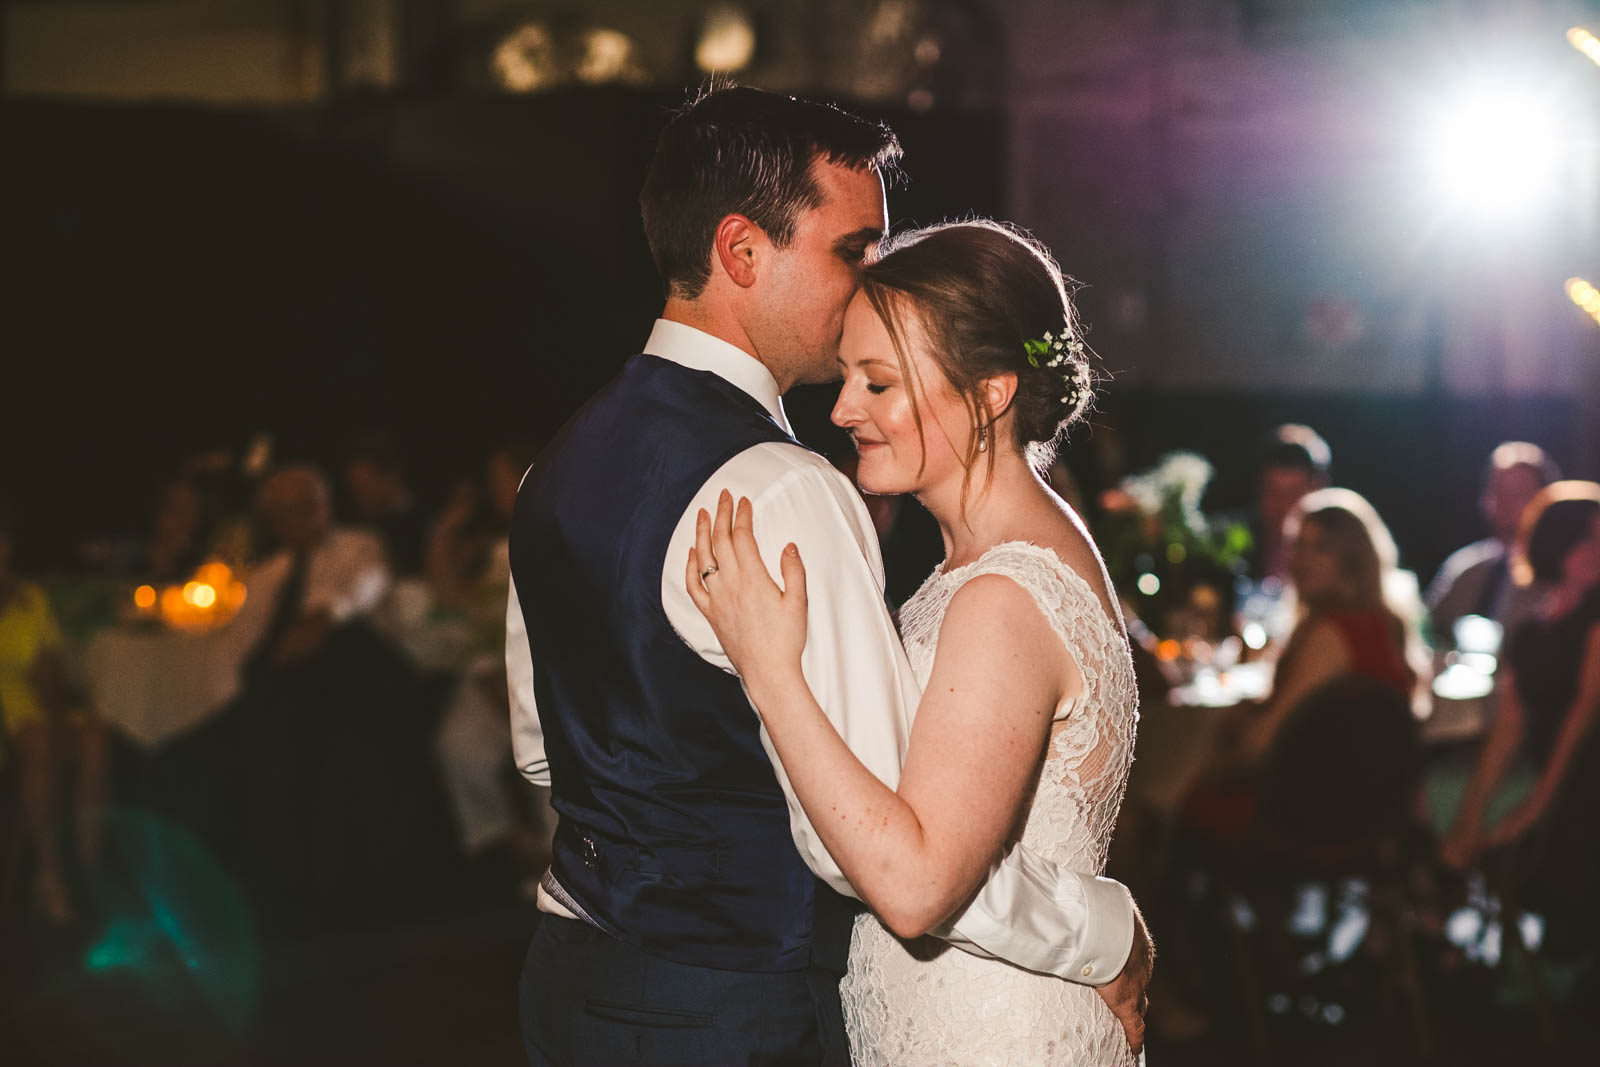 Toledo Couple Dances at Wedding Reception at the Maumee Bay Brewing Company in Toledo Ohio